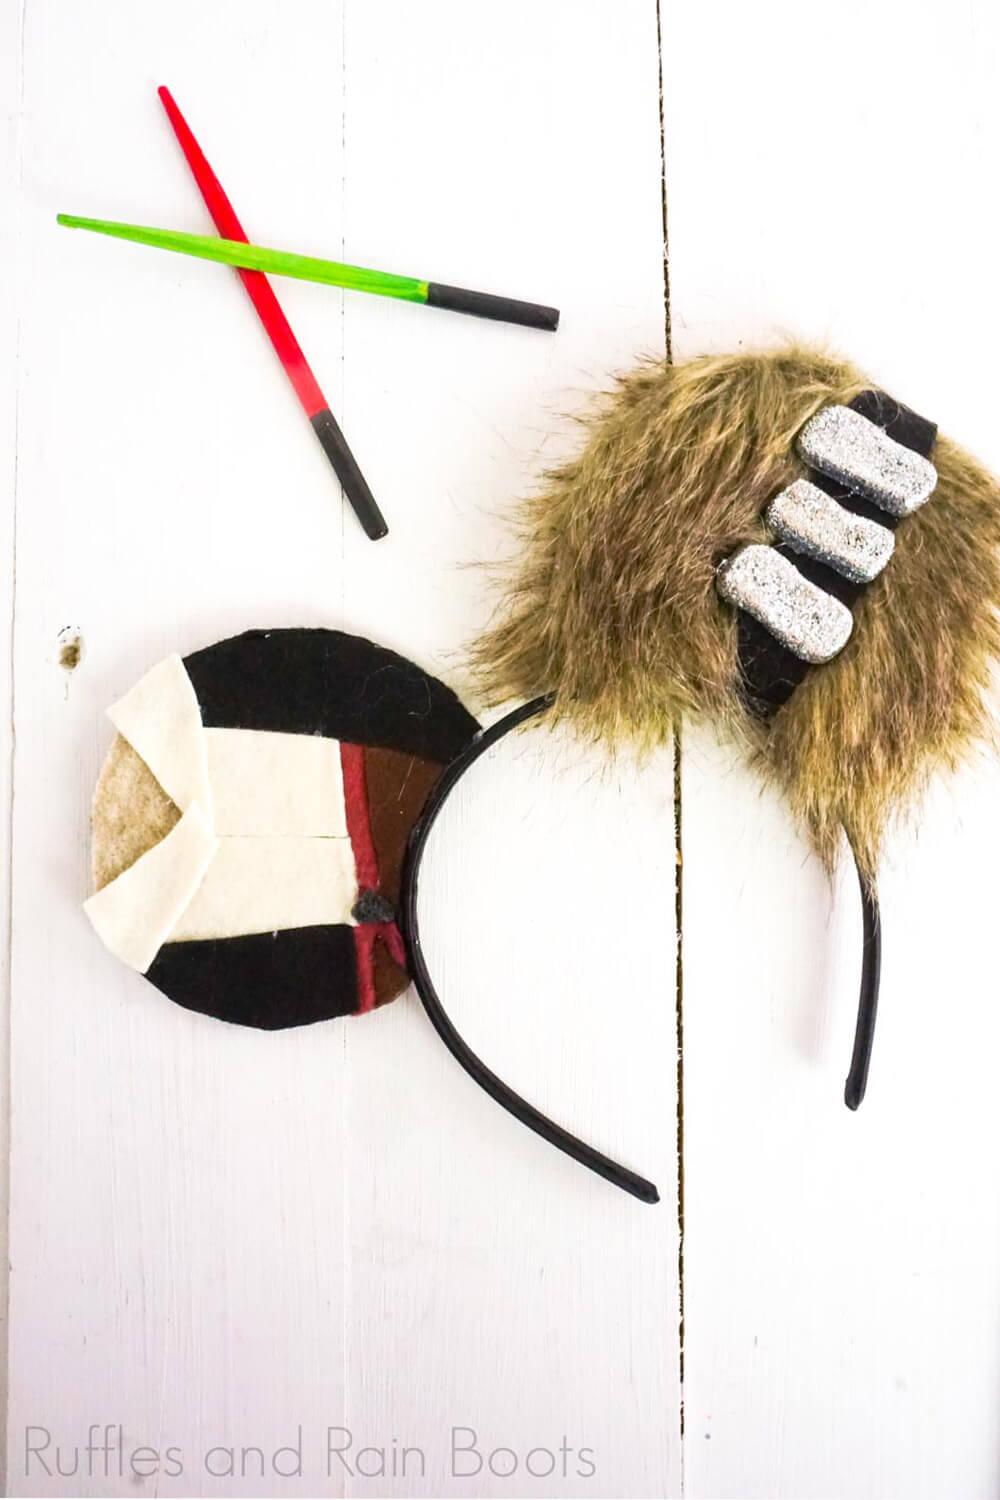 chewbacca and han solo mickey mouse headband on a white wood background with mini light sabers crossed in the background